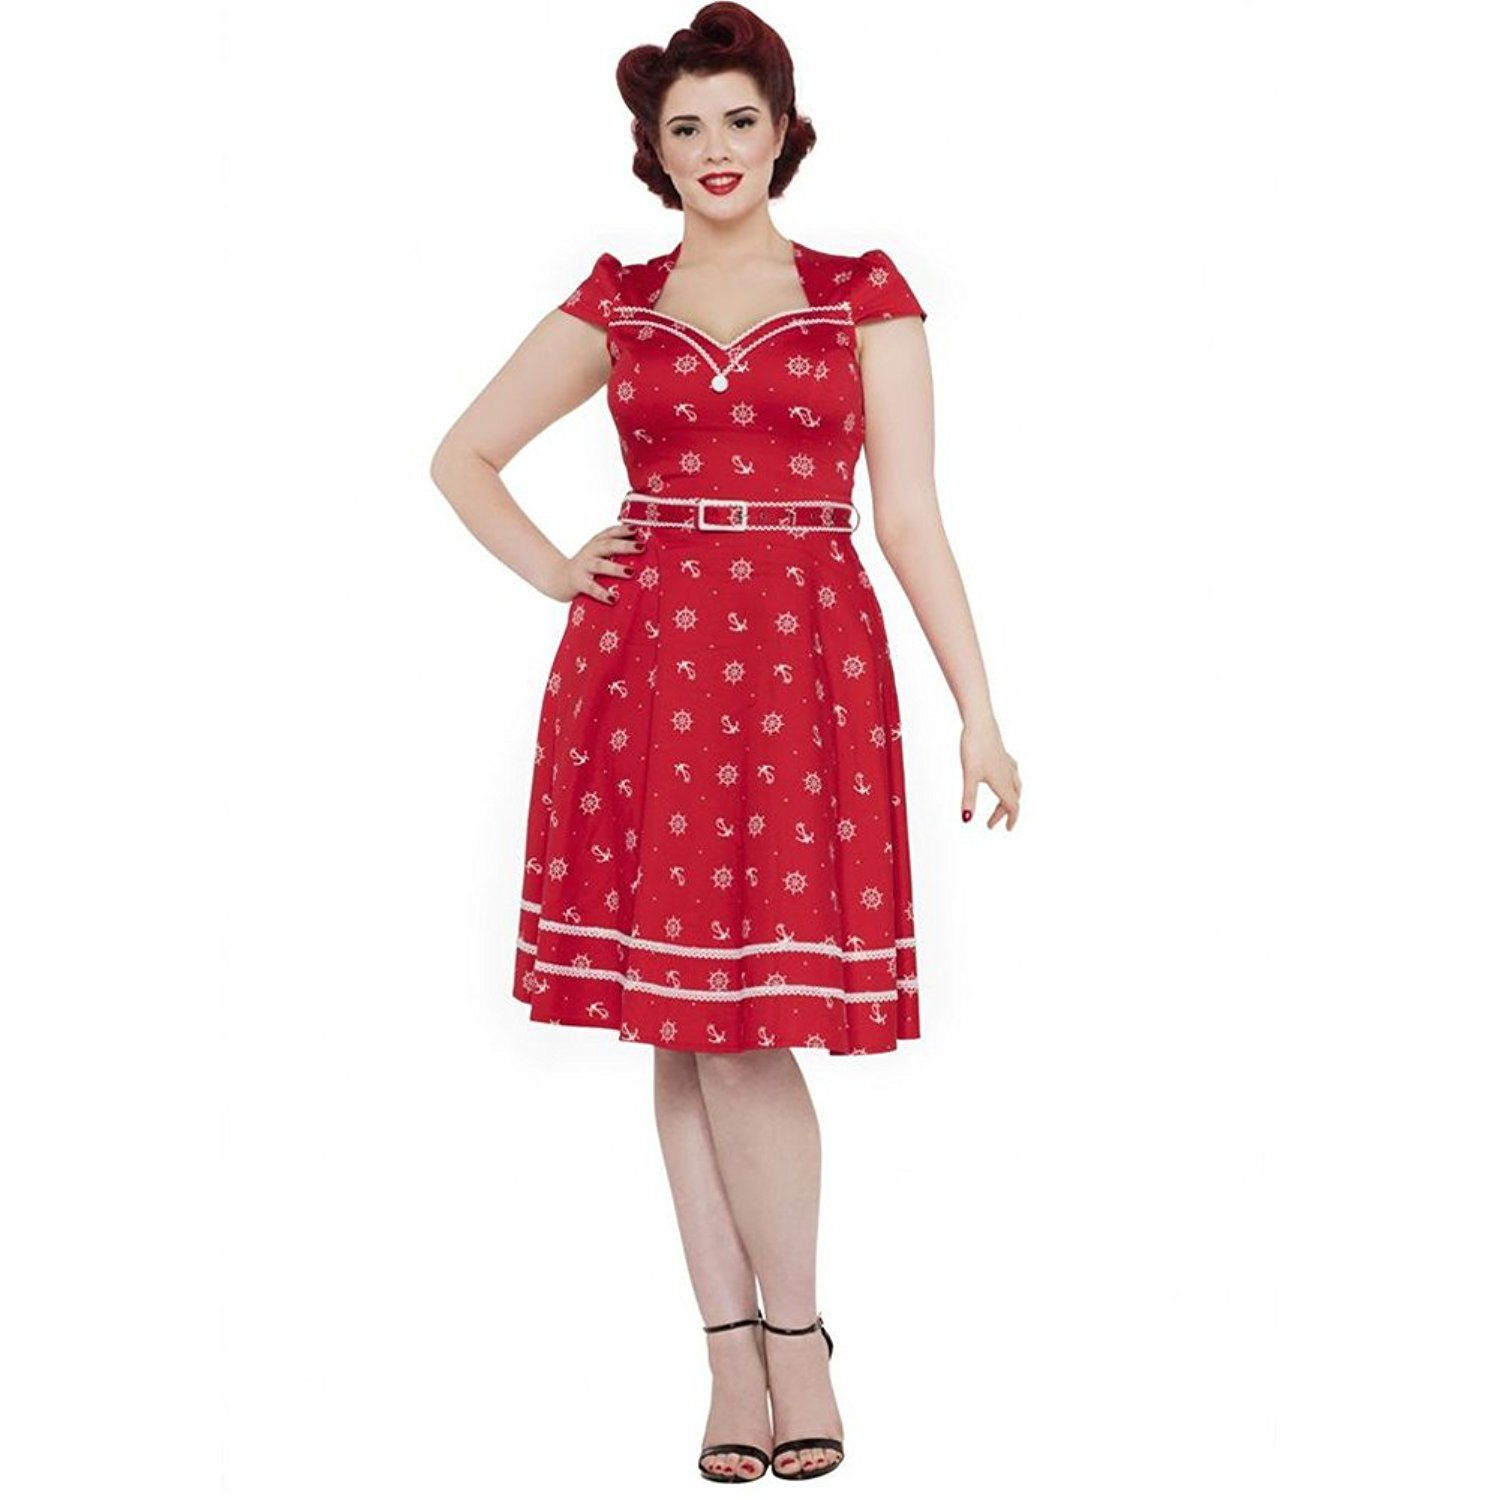 500 Vintage Style Dresses for Sale | Vintage Inspired Dresses Voodoo Vixen Womens Leslie Wheel and Anchor Flare Dress Red $89.95 AT vintagedancer.com